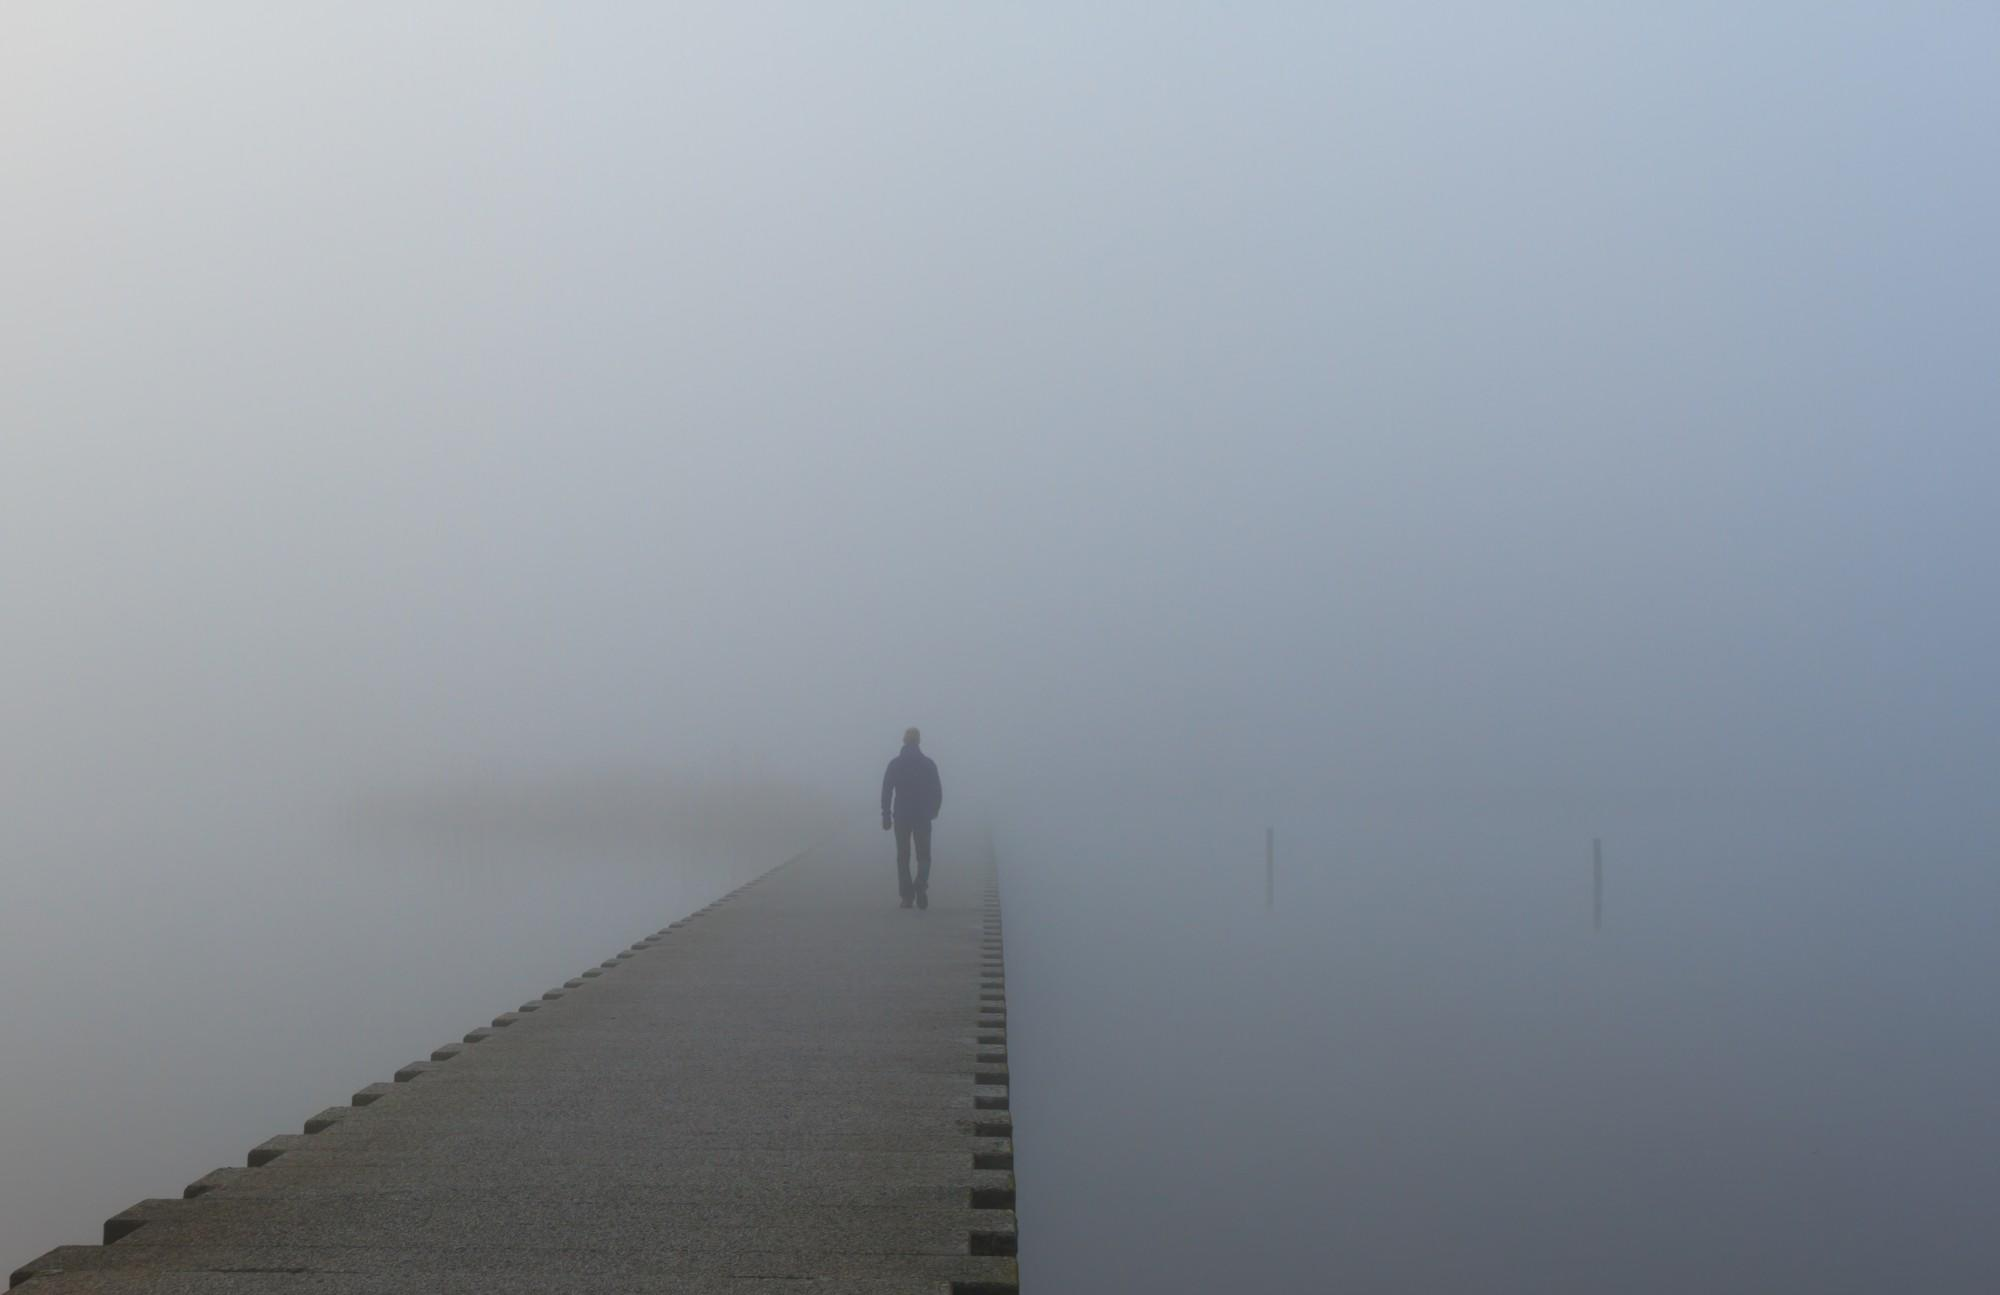 Man on a jetty walking into the dense fog.